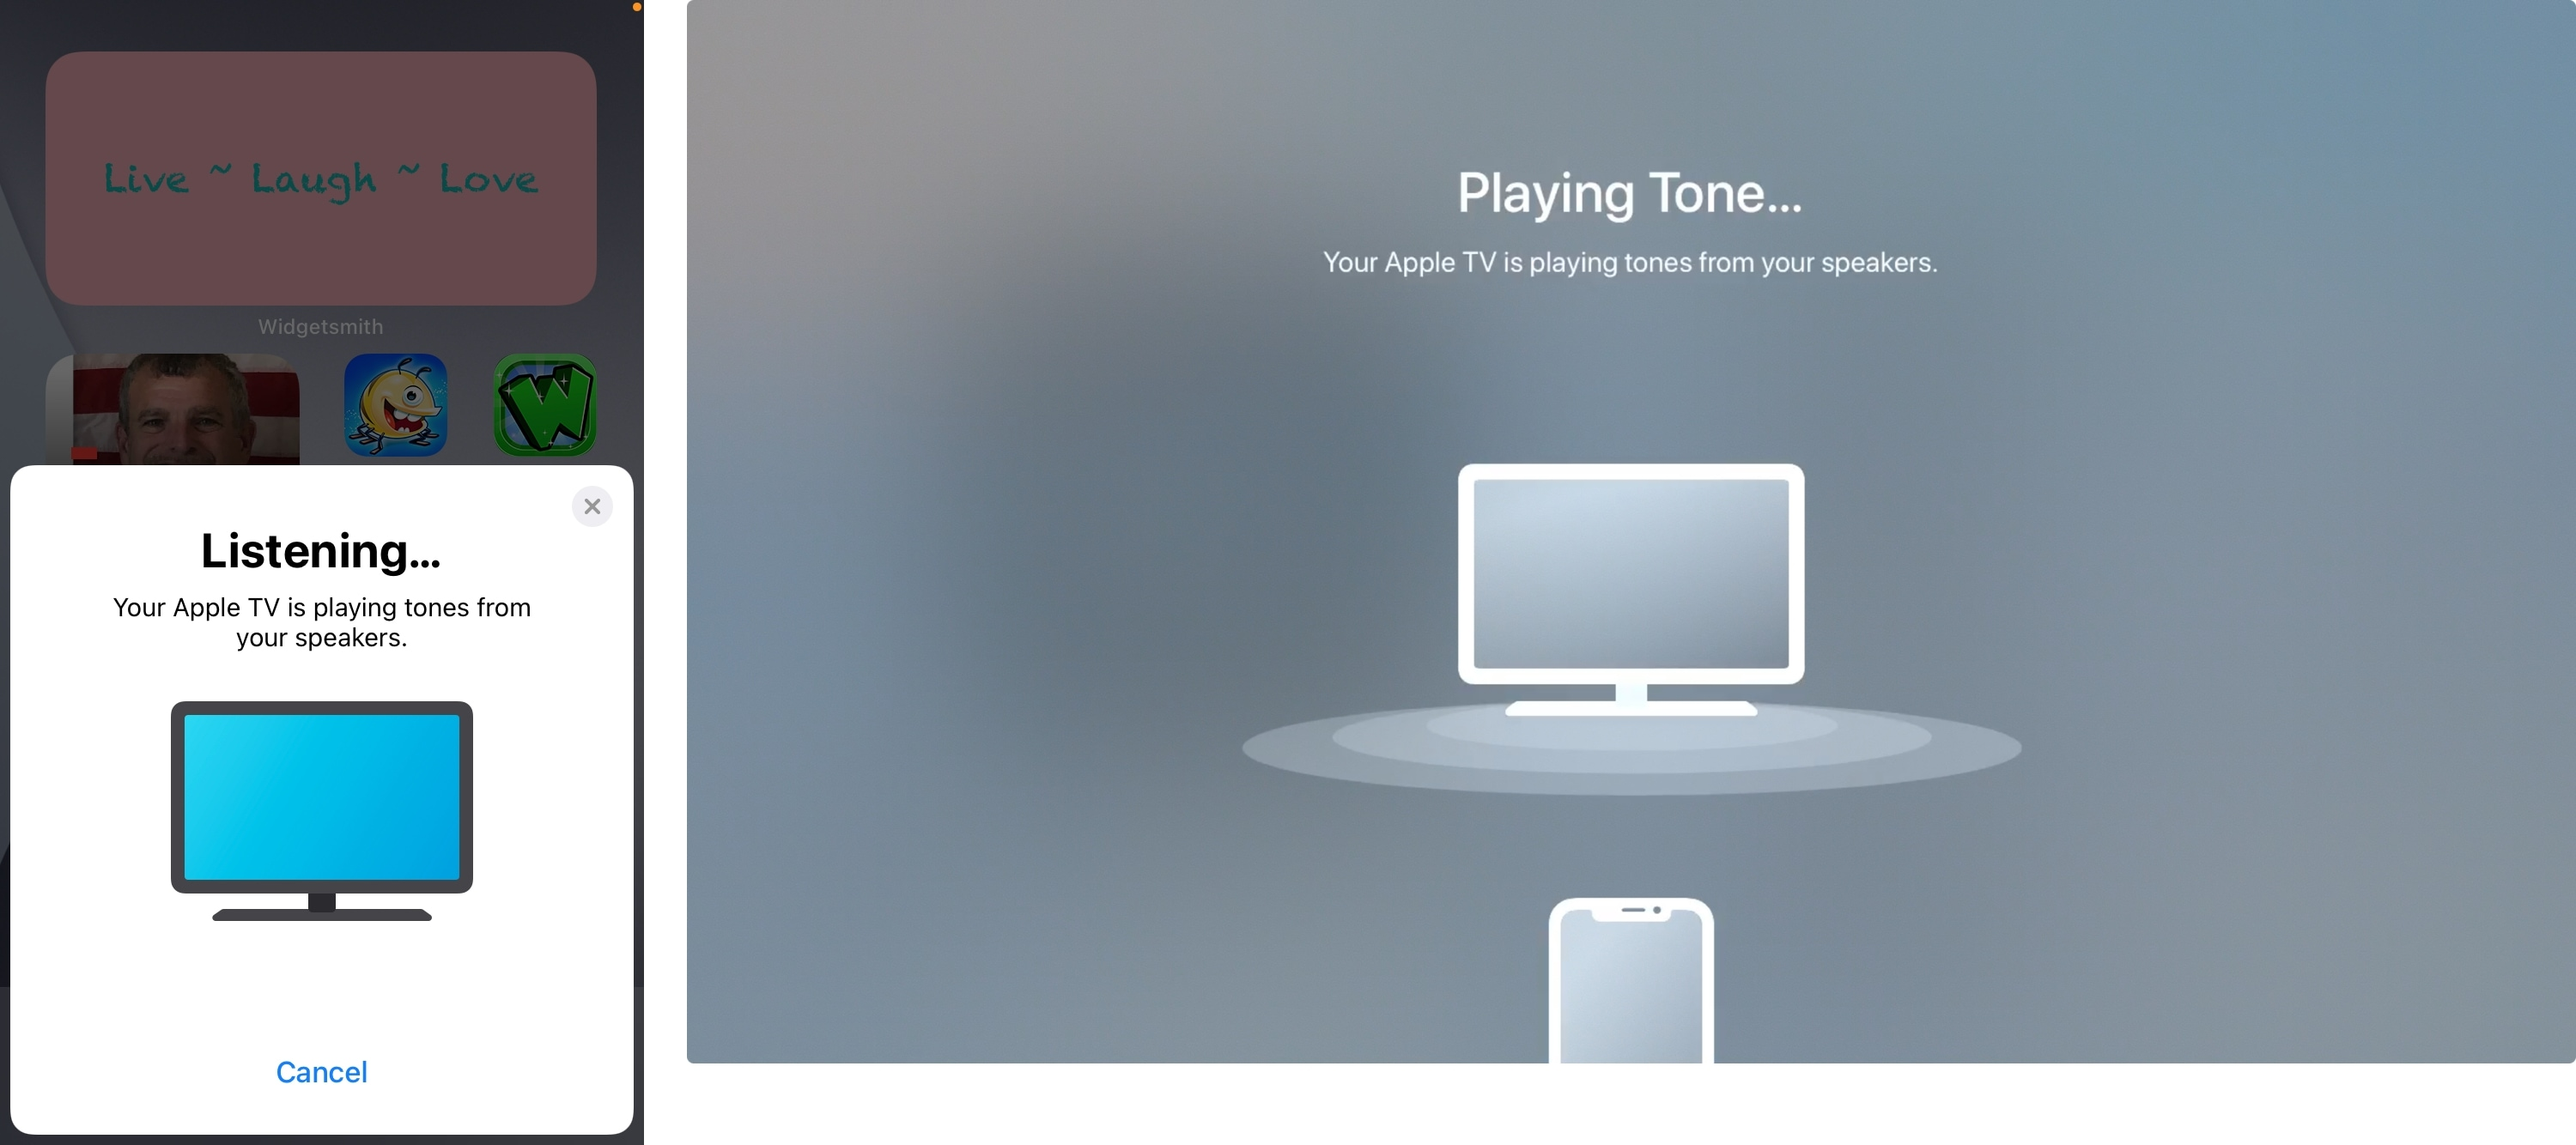 Listening and Playing Tone Wireless Audio Sync on iPhone and Apple TV